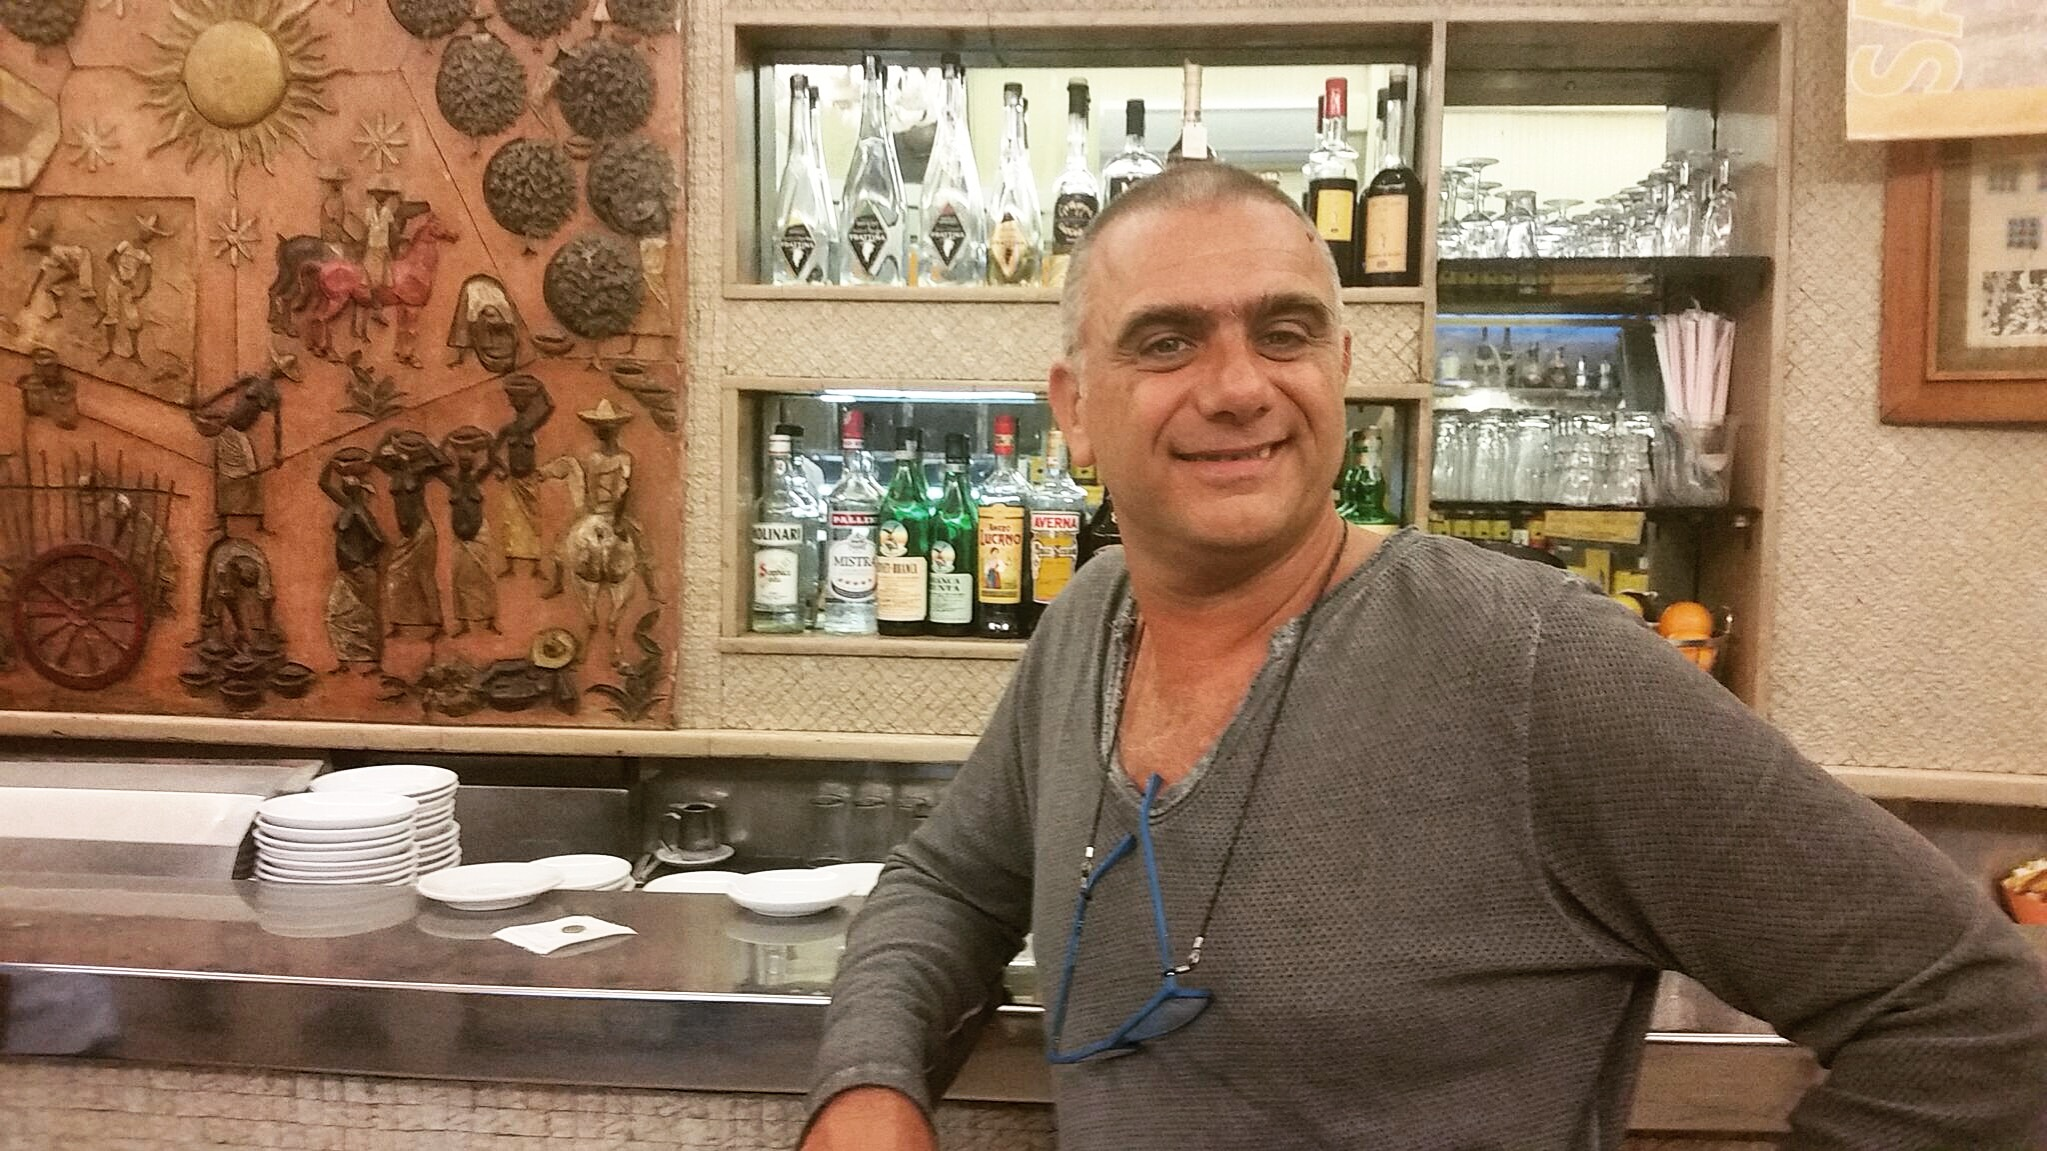 Friend-Max-espresso bar-Rome